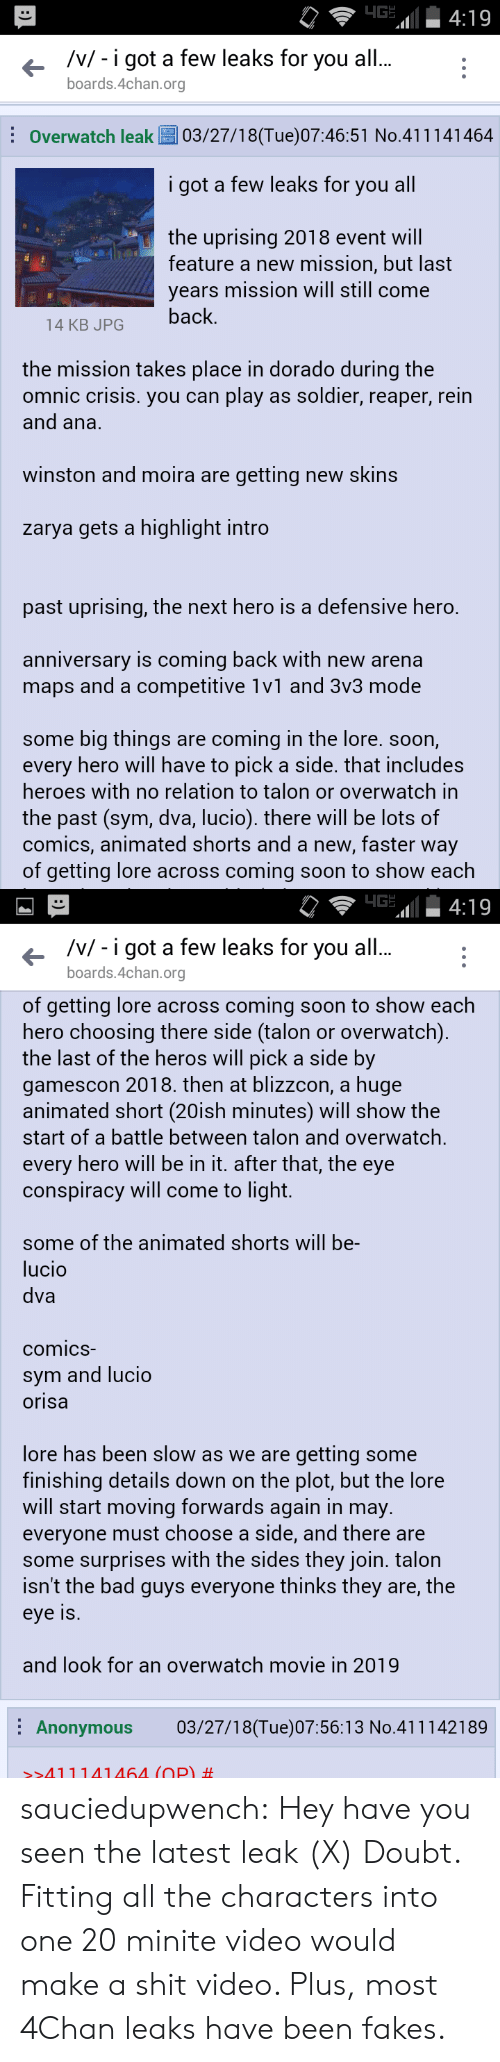 Competitive: /v/- i got a few leaks for you al  boards.4chan.org  Overwatch leak03/27/18(Tue)07:46:51 No.411141464  i got a few leaks for you all  the uprising 2018 event will  feature a new mission, but last  years mission will still come  14 KB JPGback  the mission takes place in dorado during the  omnic crisis. you can play as soldier, reaper, rein  and ana.  winston and moira are getting new skins  zarya gets a highlight intro  past uprising, the next hero is a defensive hero.  anniversary is coming back with new arena  maps and a competitive 1v1 and 3v3 mode  some big things are coming in the lore. soon,  every hero will have to pick a side. that includes  heroes with no relation to talon or overwatch in  the past (sym, dva, lucio). there will be lots of  comics, animated shorts and a new, faster way  of getting lore across coming soon to show each   /v/ - i got a few leaks for you all  boards.4chan.org  of getting lore across coming soon to show each  hero choosing there side (talon or overwatch)  the last of the heros will pick a side by  gamescon 2018. then at blizzcon, a huge  animated short (20ish minutes) will show the  start of a battle between talon and overwatch,  every hero will be in it. after that, the eye  conspiracy will come to light.  some of the animated shorts will be-  lucio  dva  comicS  sym and lucio  orisa  lore has been slow as we are getting some  finishing details down on the plot, but the lore  will start moving forwards again in may.  everyone must choose a side, and there are  some surprises with the sides they join. talon  isn't the bad guys everyone thinks they are, the  eye Is  and look for an overwatch movie in 2019  Anonymous 03/27/18(Tue)07:56:13 No.411142189  >>411141464 (OP) sauciedupwench:  Hey have you seen the latest leak  (X) Doubt. Fitting all the characters into one 20 minite video would make a shit video. Plus, most 4Chan leaks have been fakes.